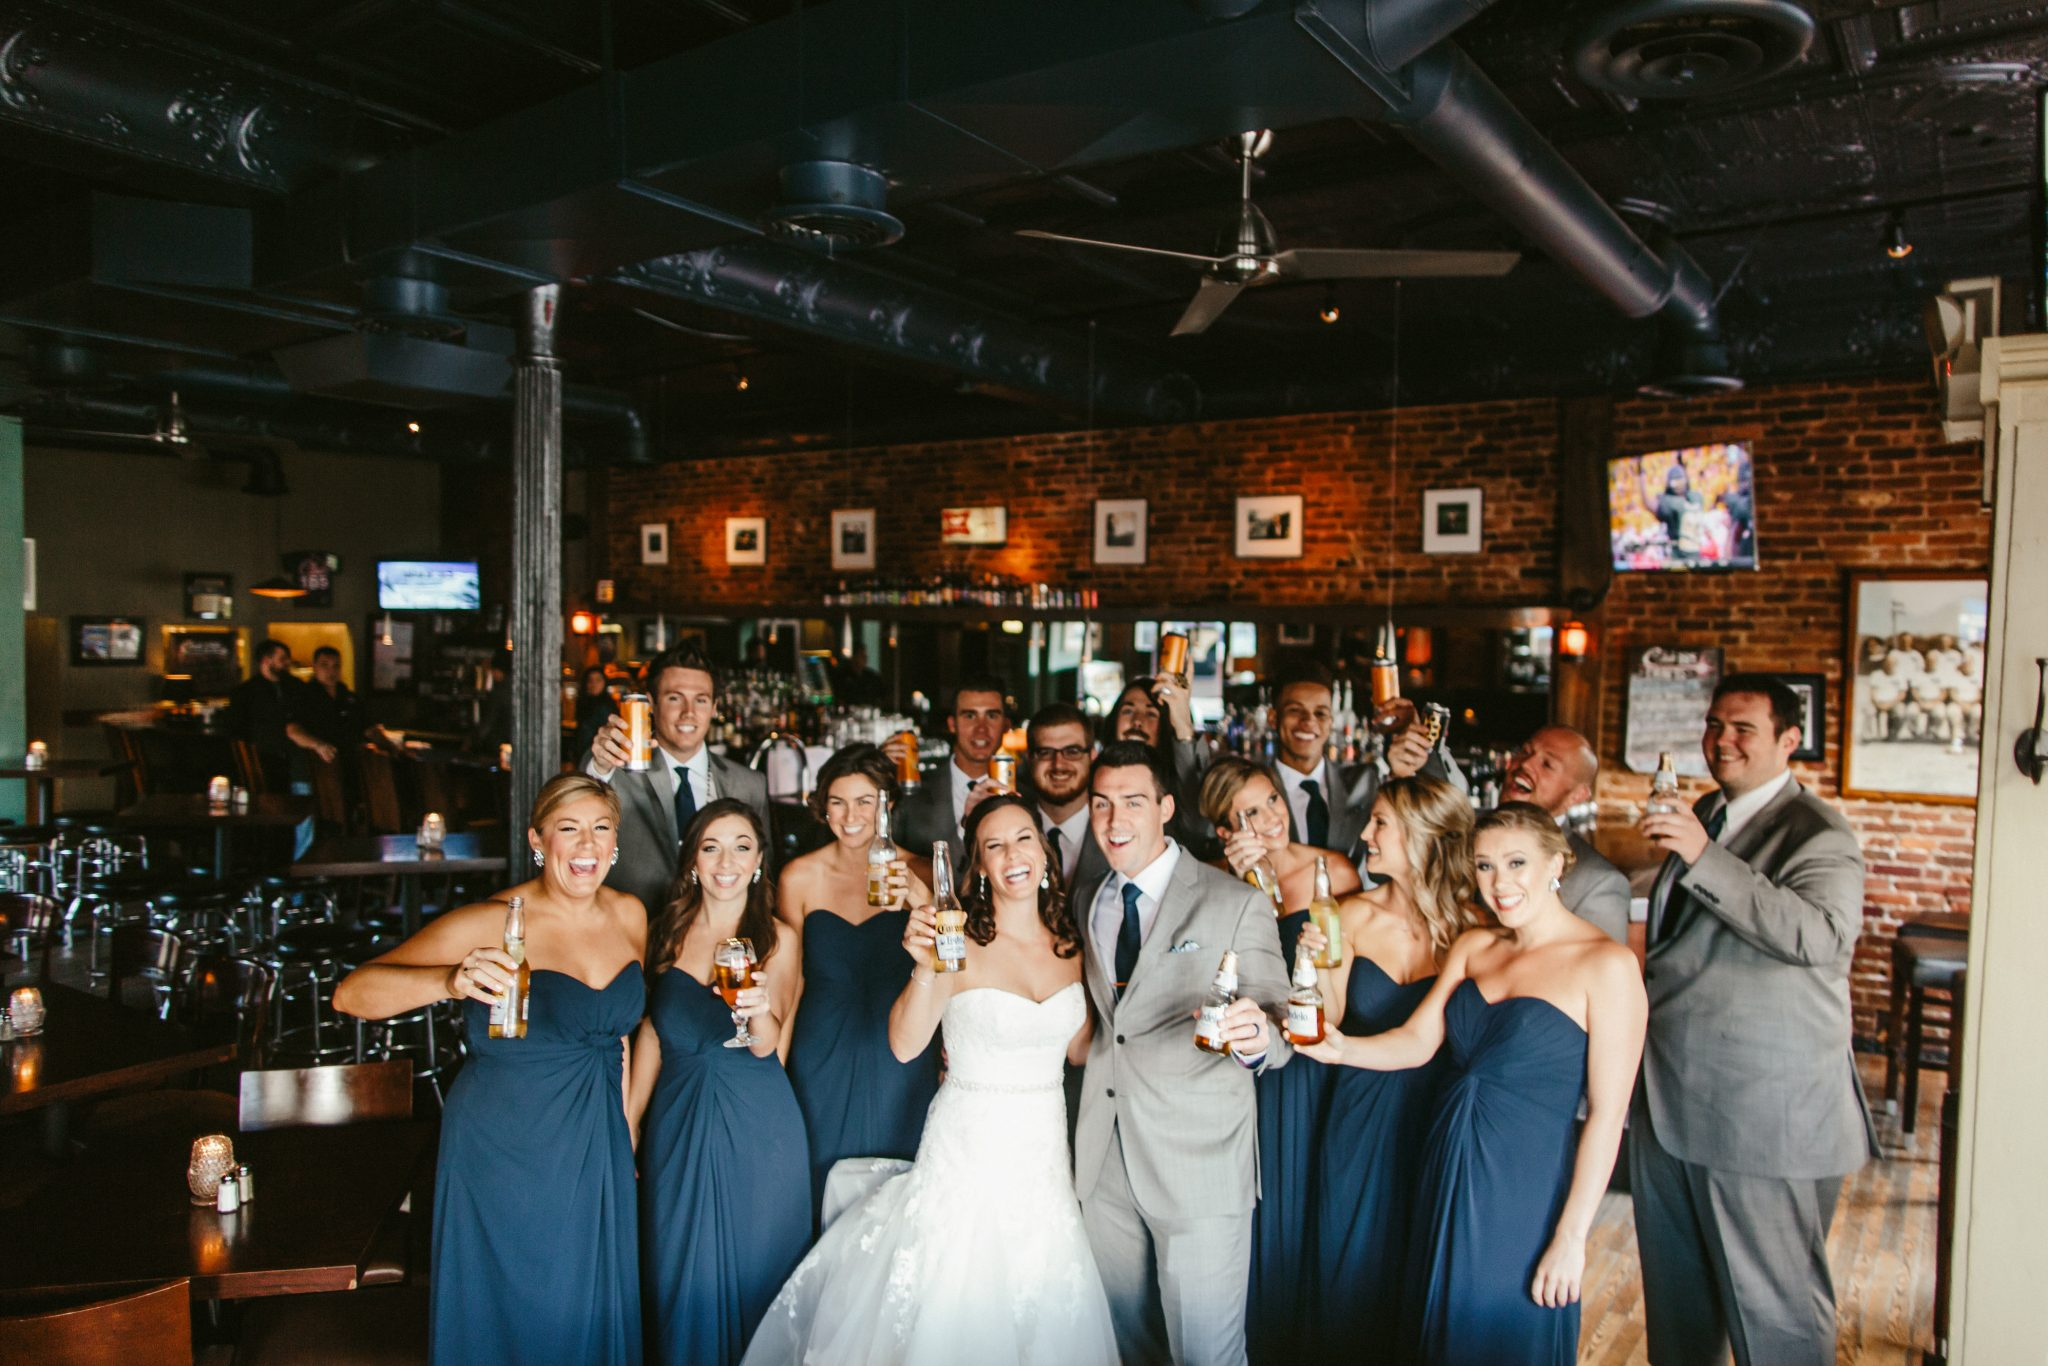 bar bridal party photos, indoor bridal party photos, unique bridal party photos, blue bridesmaid dresses, grey groomsmen suits, bridal party drinking photos, philadelphia documentary wedding photographer, Brooklyn wedding photography, Brooklyn wedding, Philadelphia wedding photographer, Philadelphia wedding, Brooklyn new york photographer, unique wedding inspiration, fun wedding photos, romantic wedding, destination wedding photographer, wedding photography inspiration, destination wedding inspiration, city wedding ideas